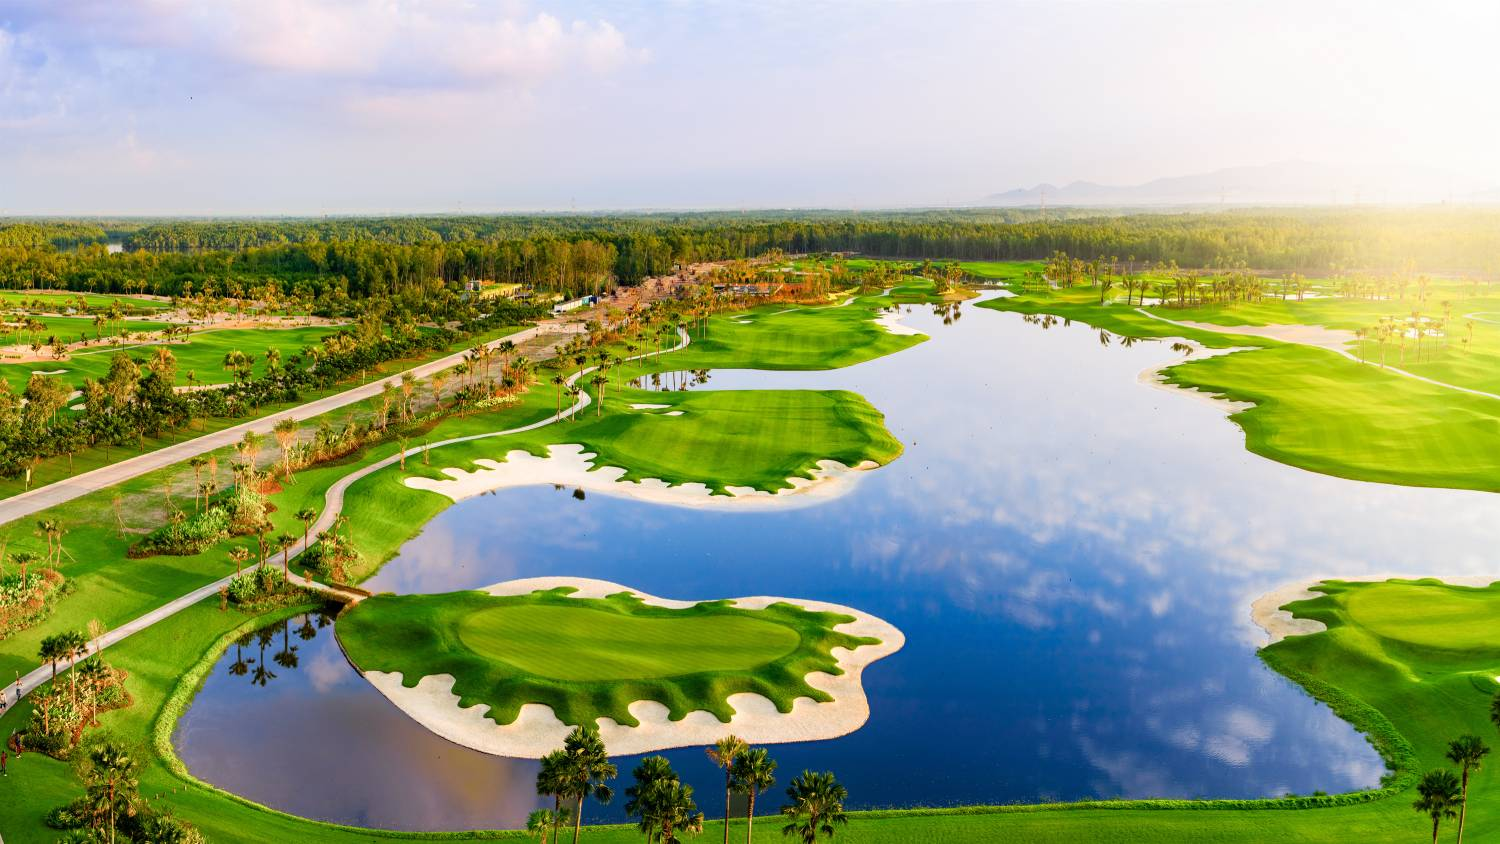 FOREST CITY - Designed by landscape architect and golf course designer Liang Guo Kun, the 18-hole Classic Golf Course is filled with lush greenery and lakes (Credit: Country Garden Pacificview)